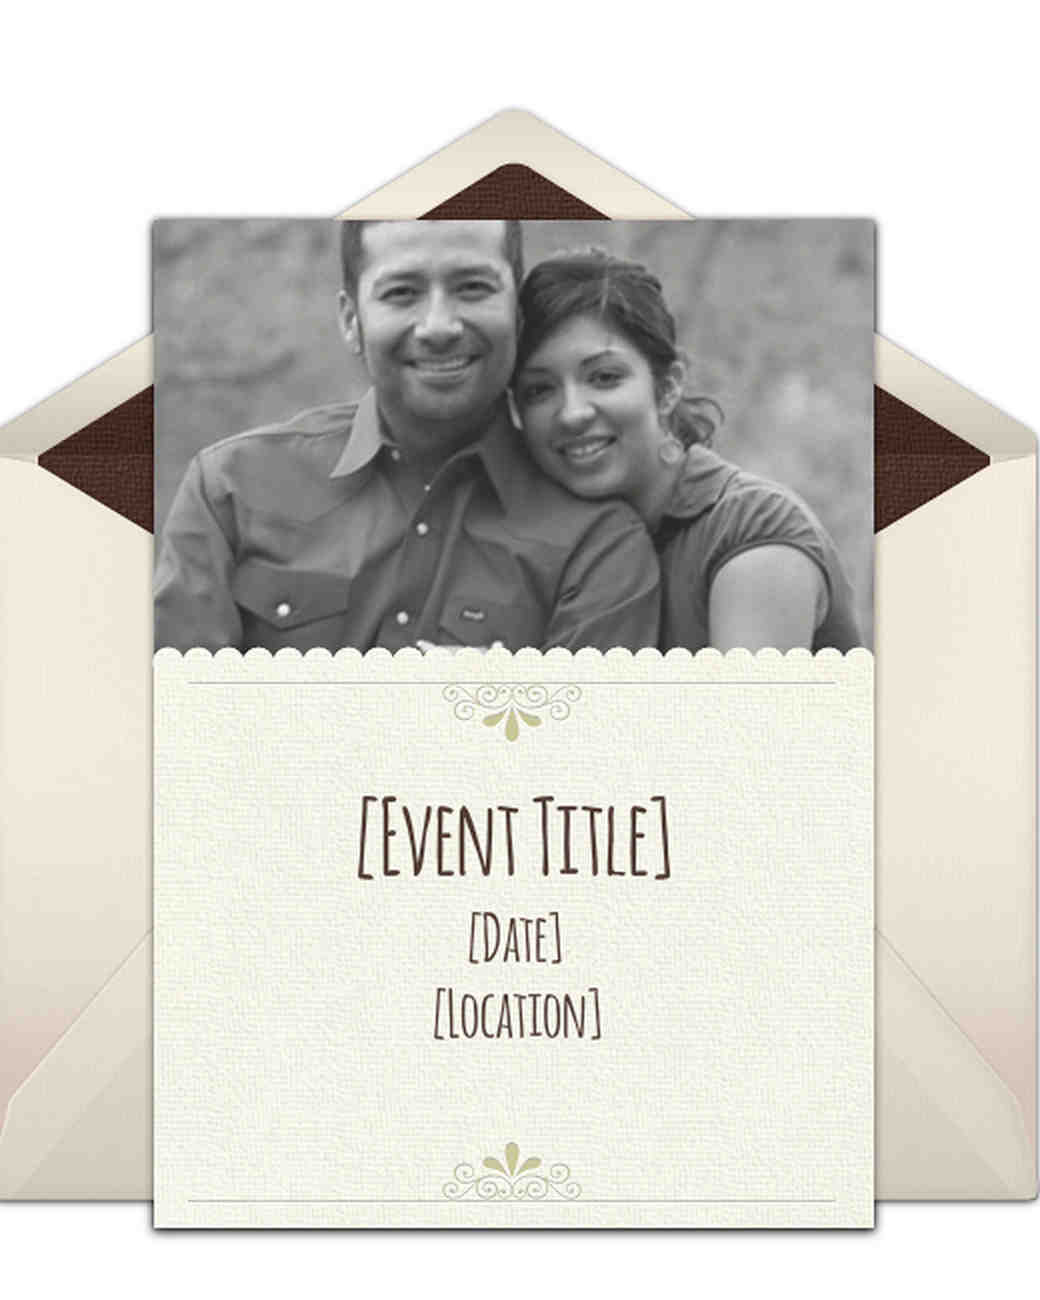 paperless-engagement-party-invitations-punchbowl-ornate-photo-frame-0416.jpg